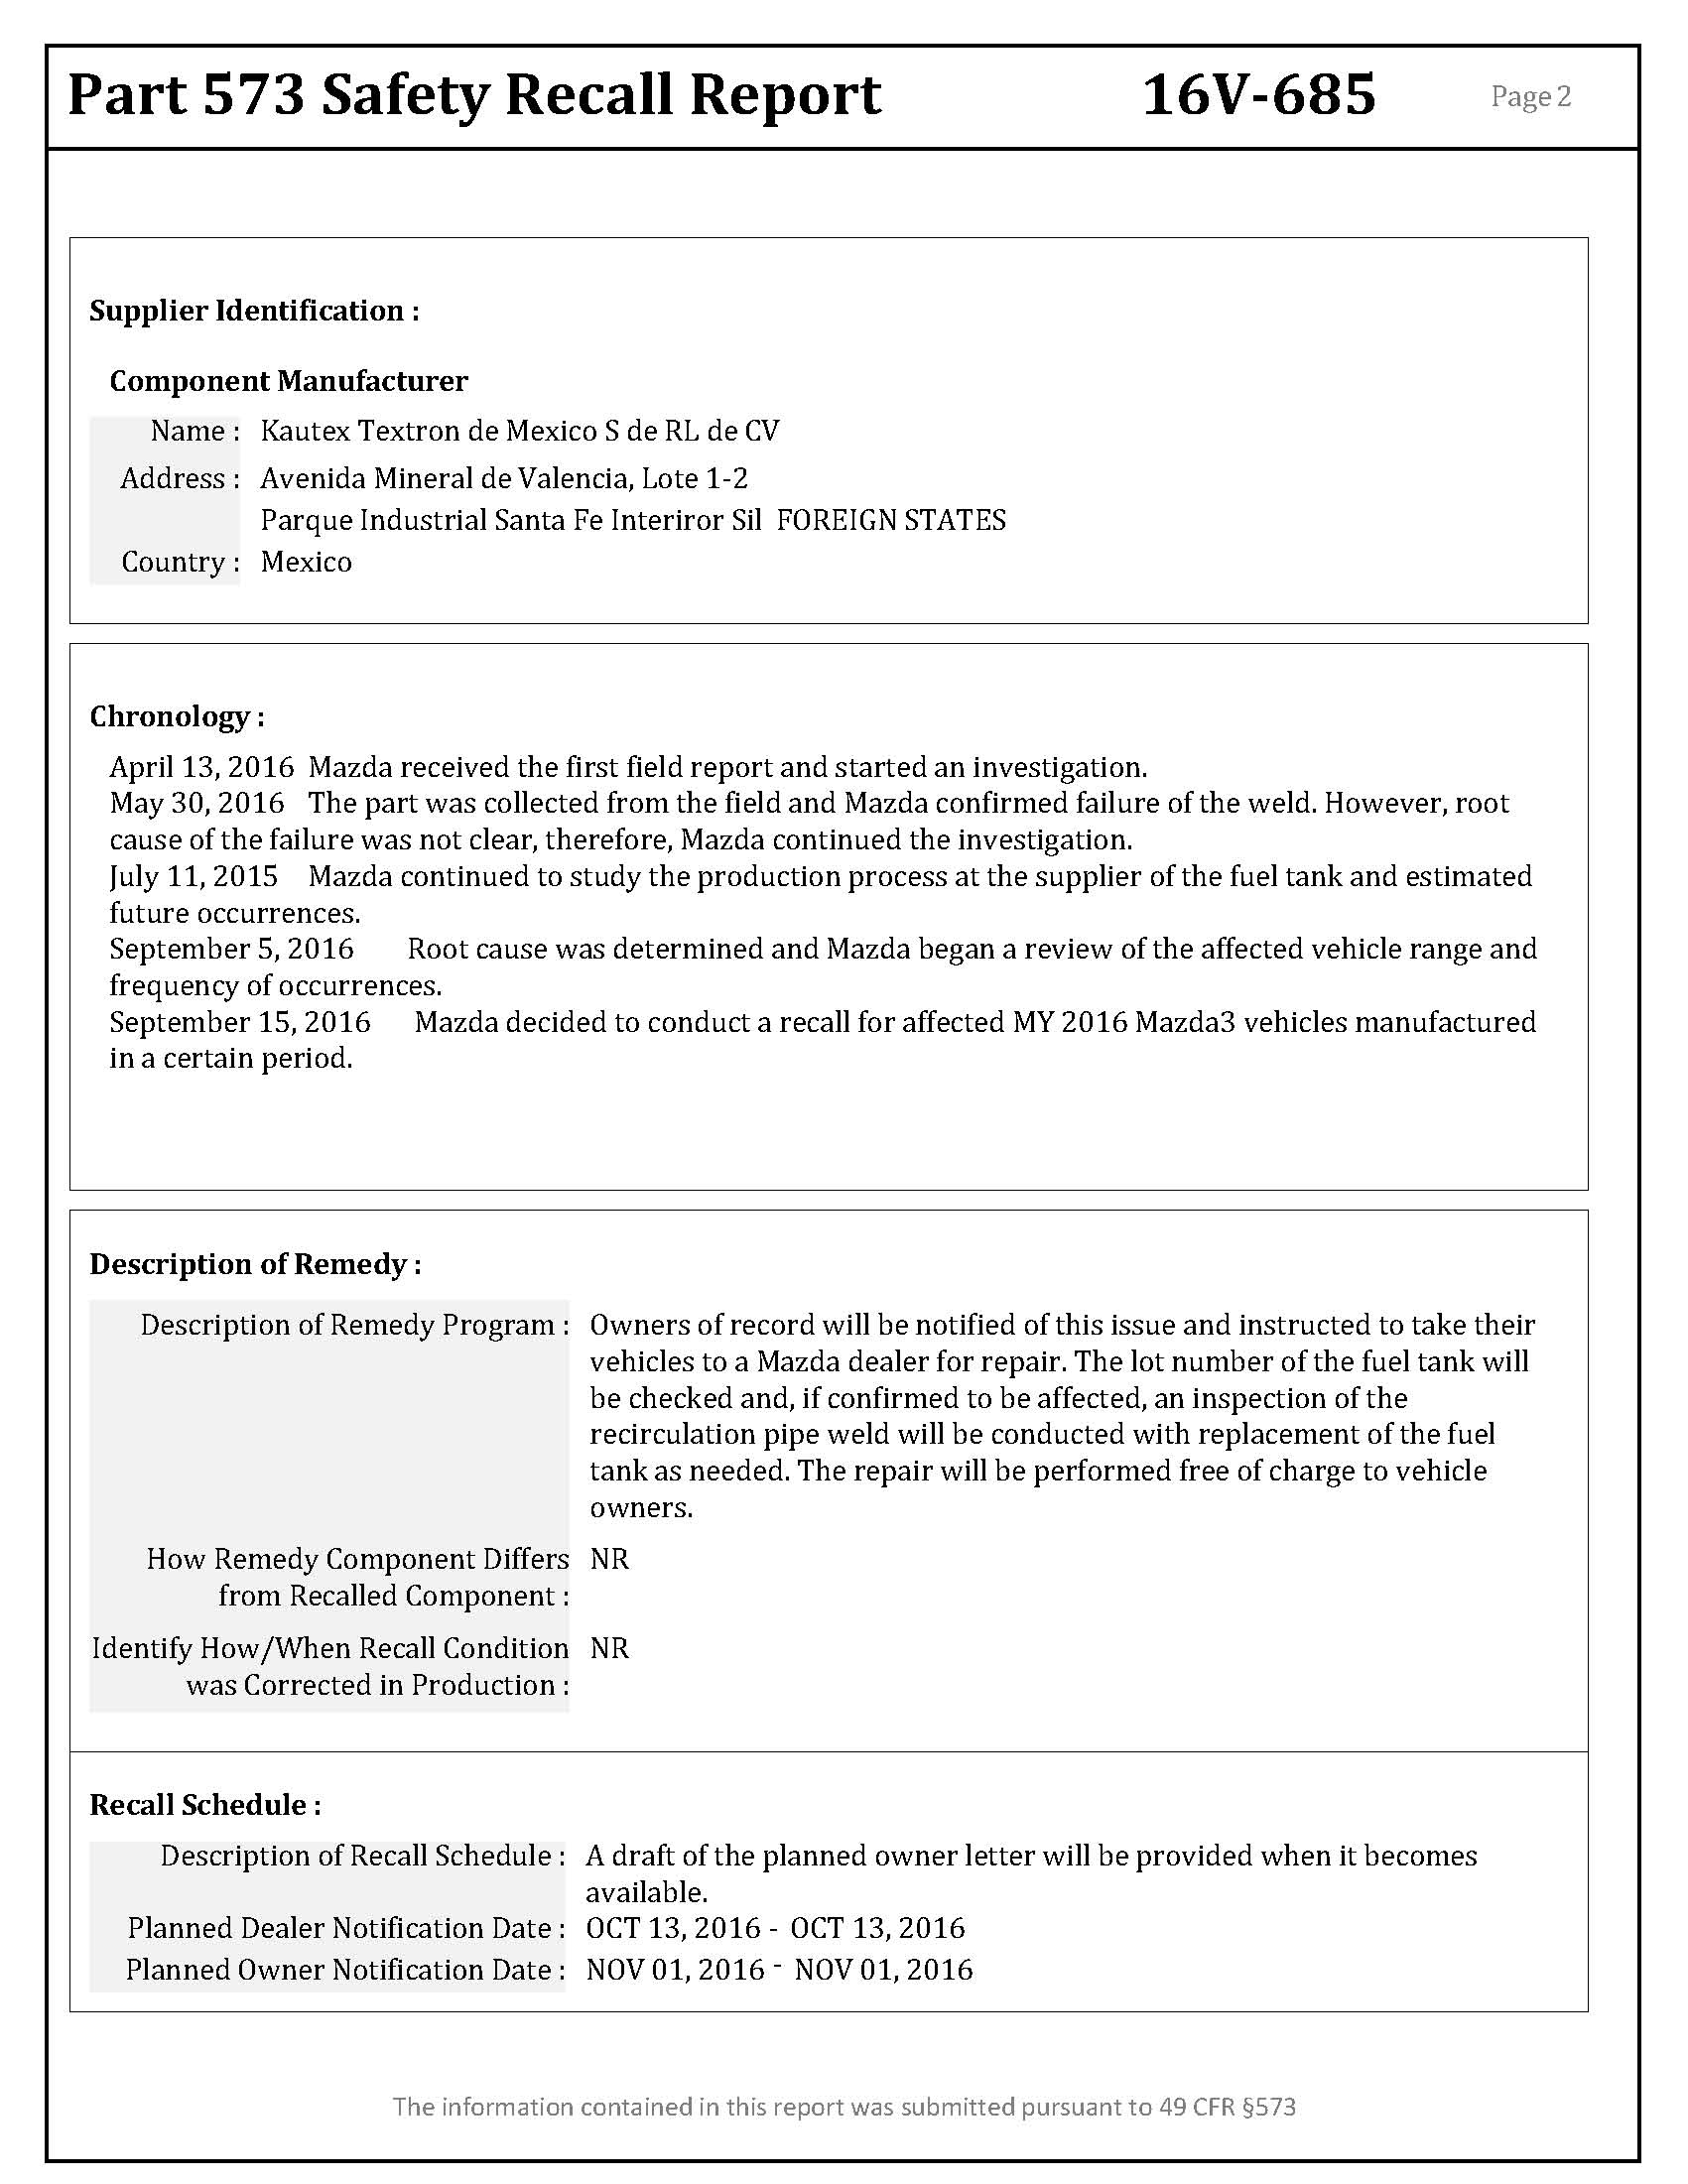 Mazda Recalling 2014-2016 3s for possible faulty fuel tank - Page 3 ...